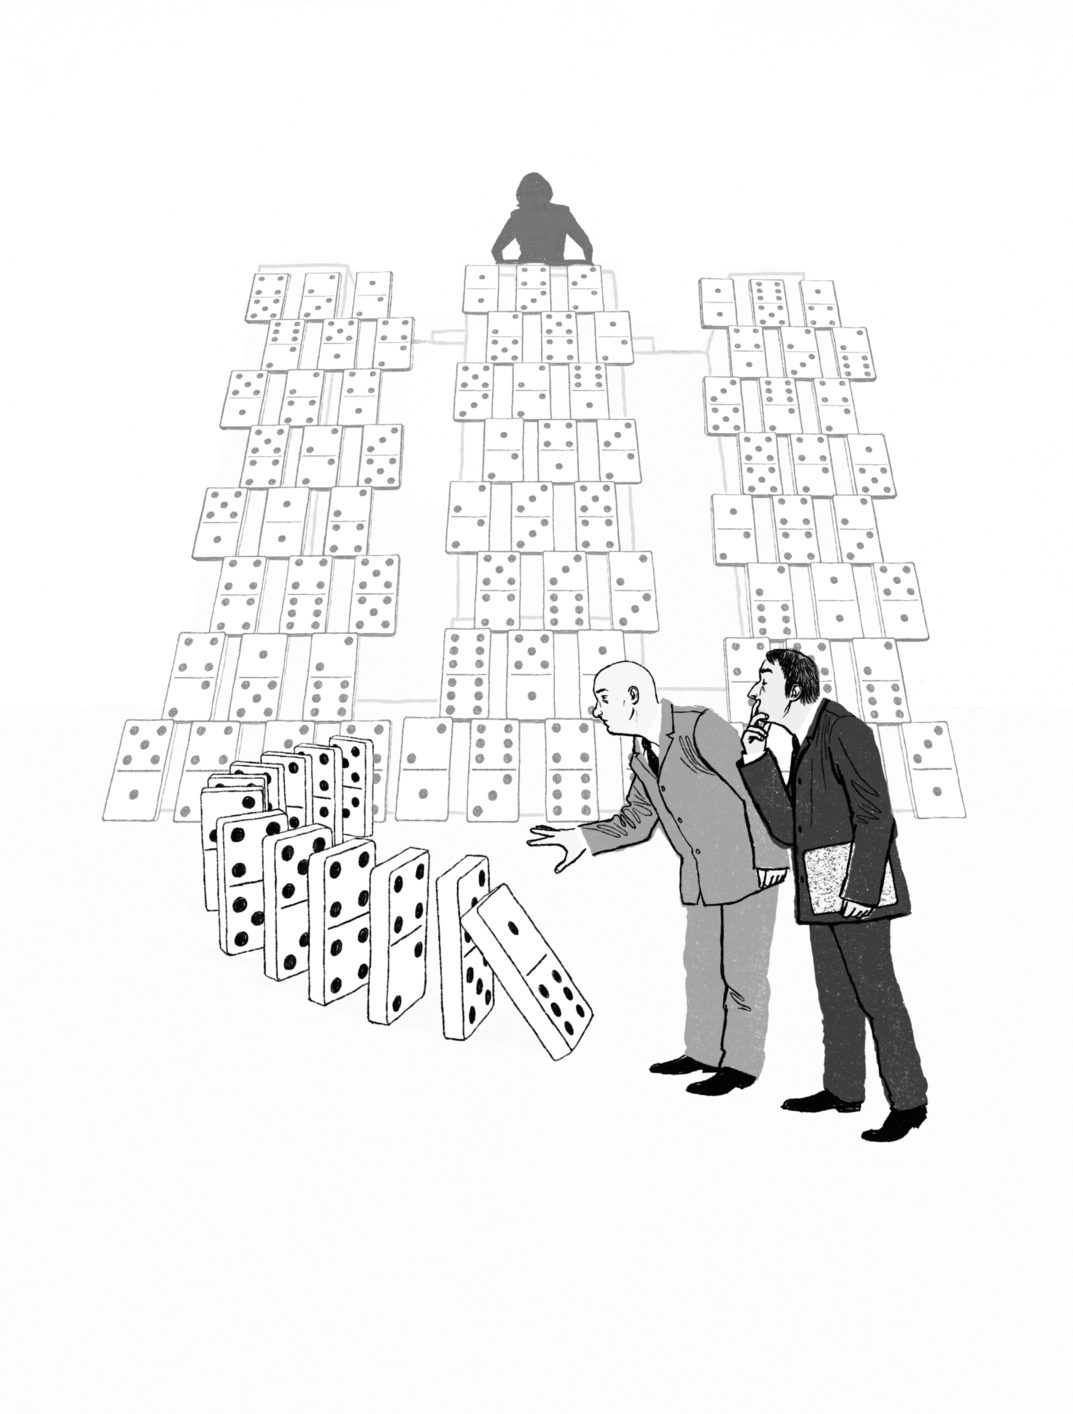 Illustration of man knocking over dominos set up